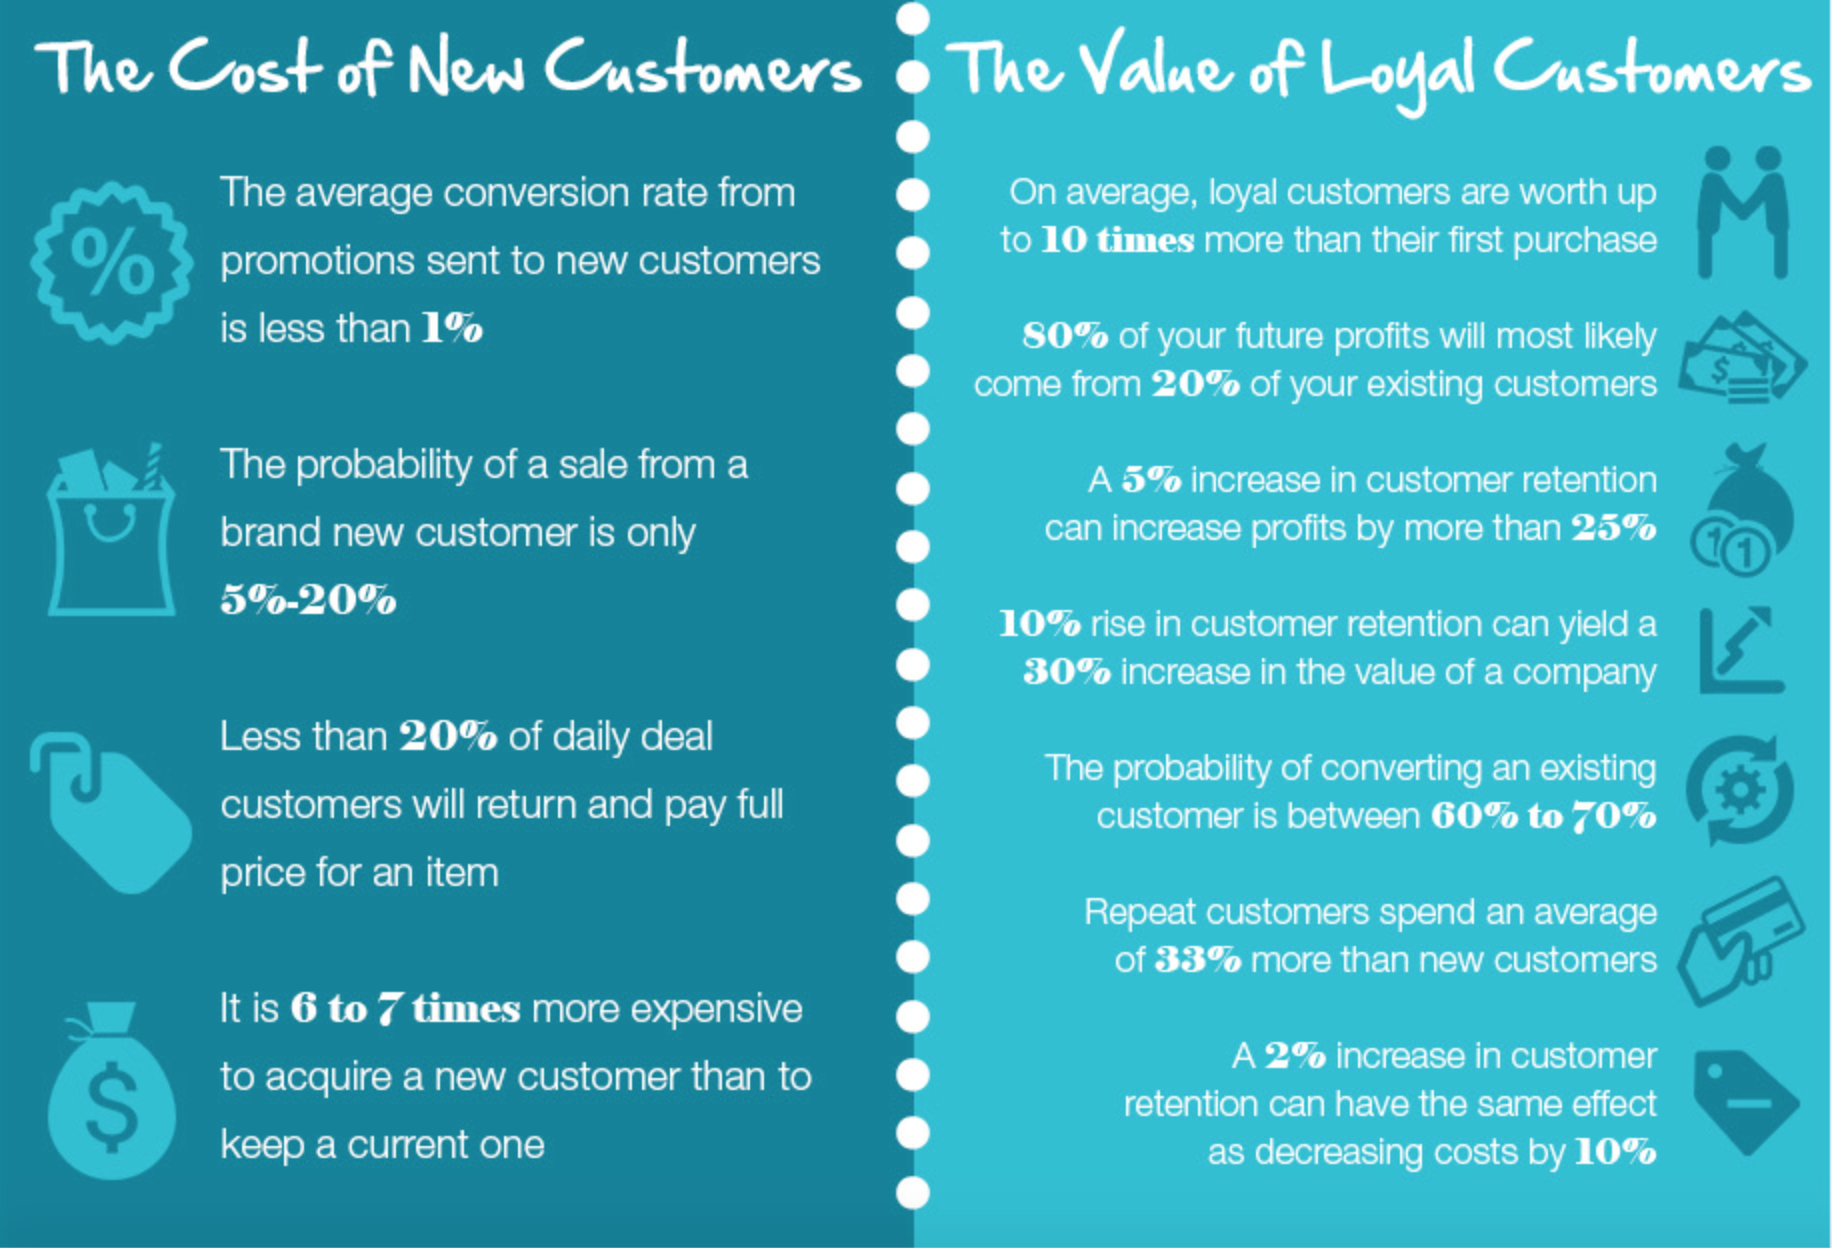 Customer acquisition, retention, conversions